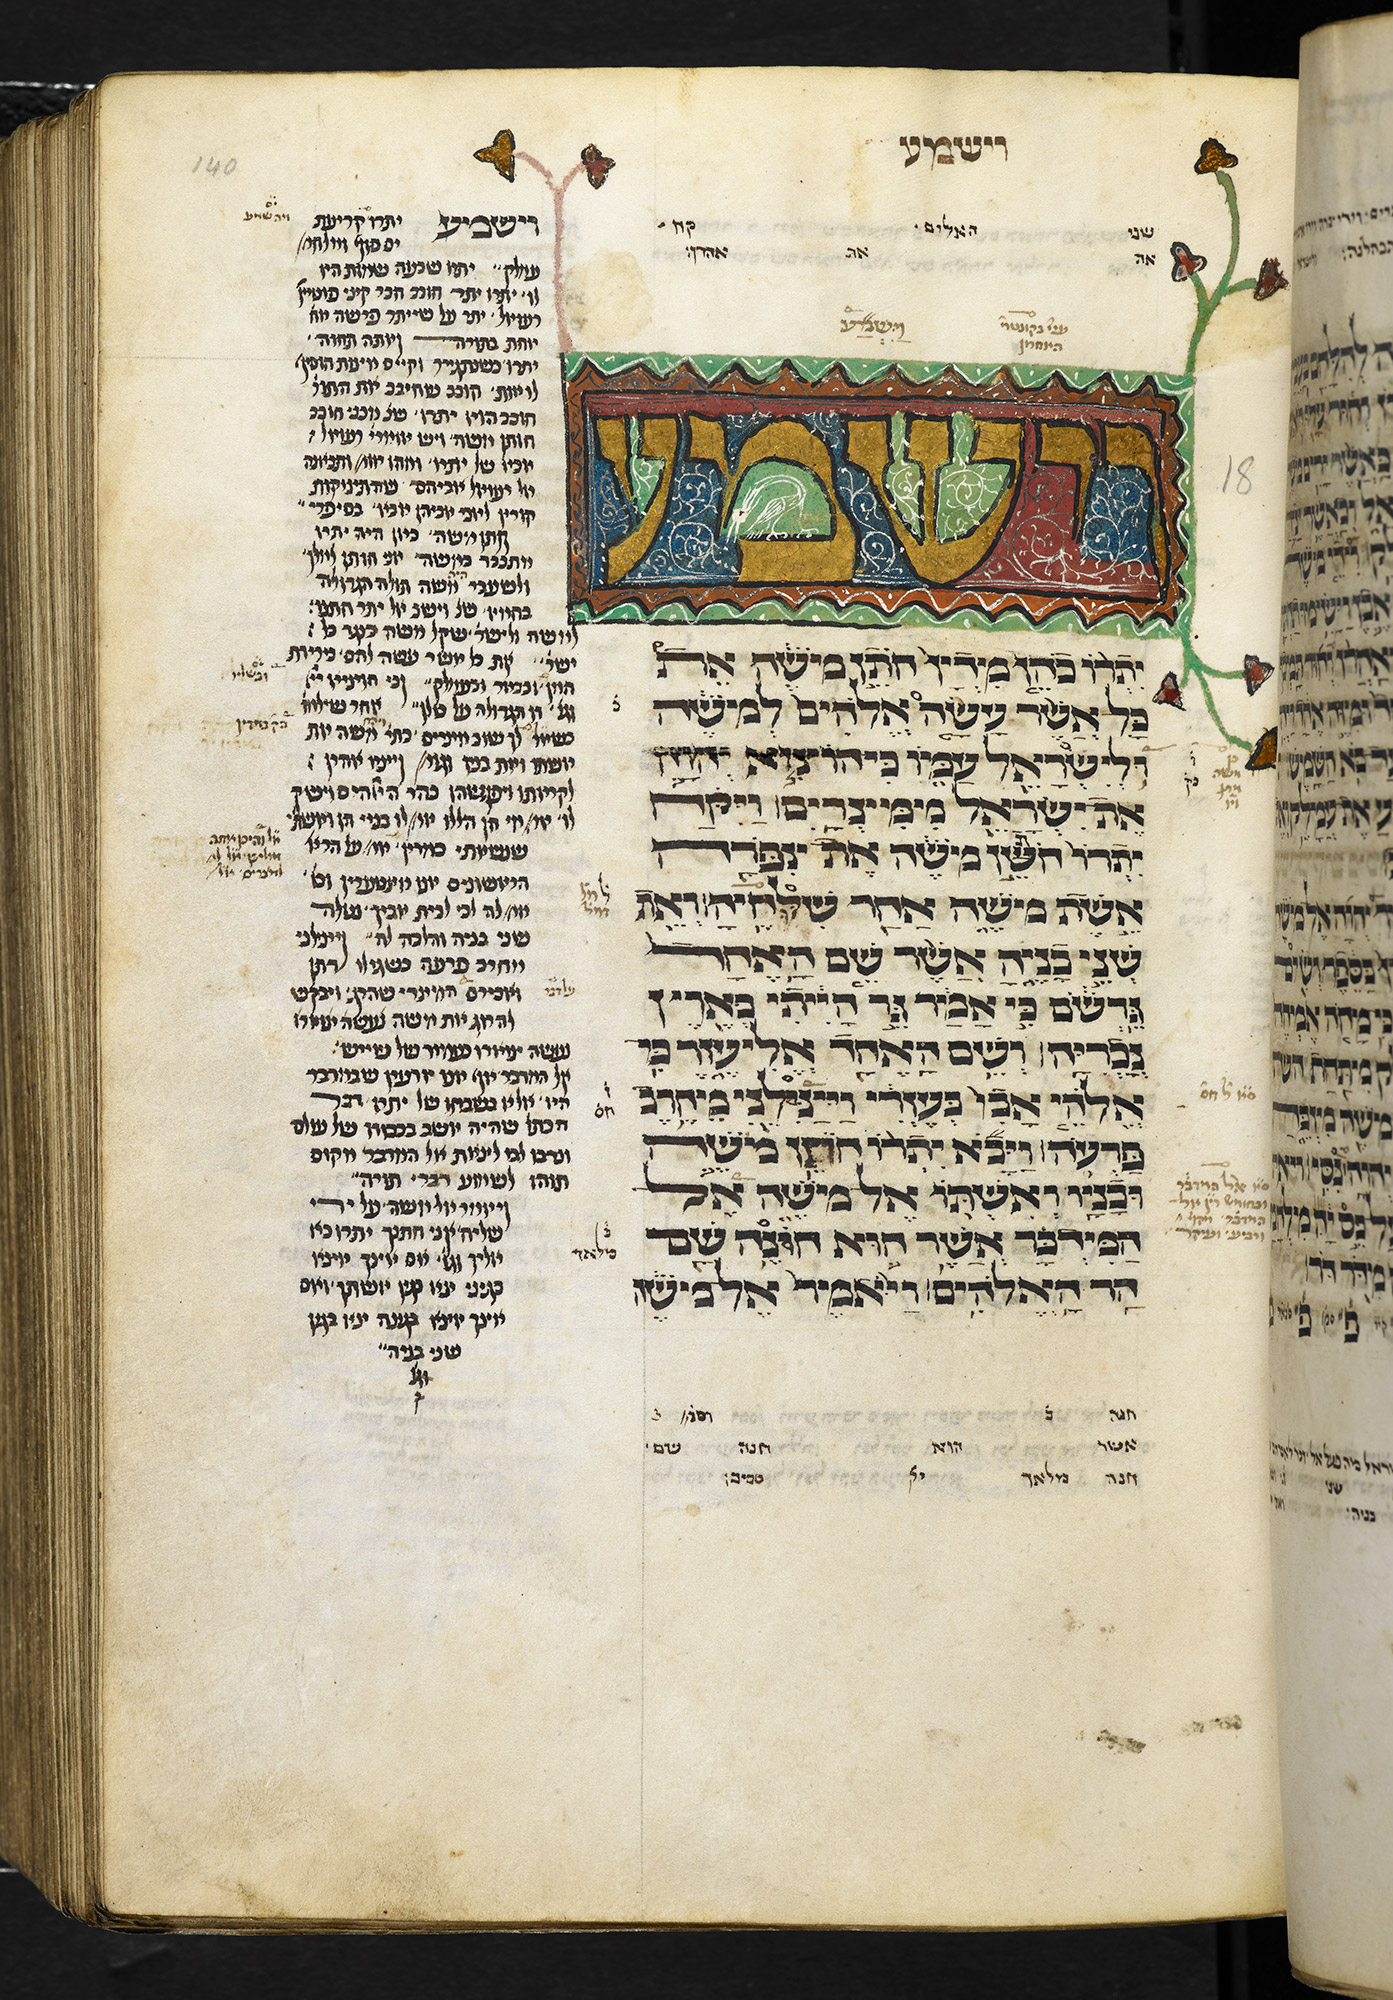 Pentateuch folio with commentry in a column to the left hand edge of the page